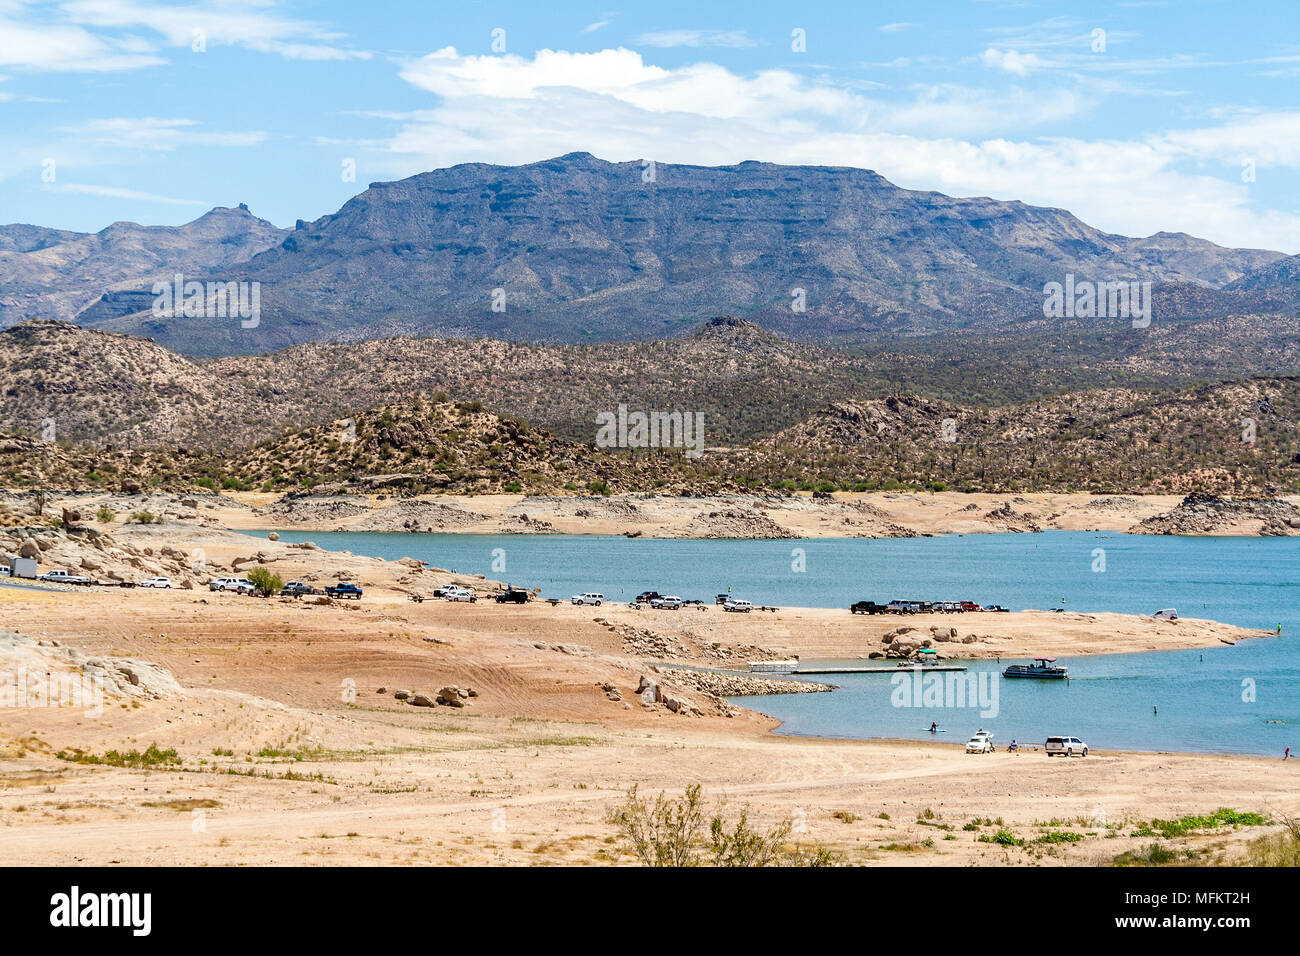 Local secret in the middle of the desert - Stock Image